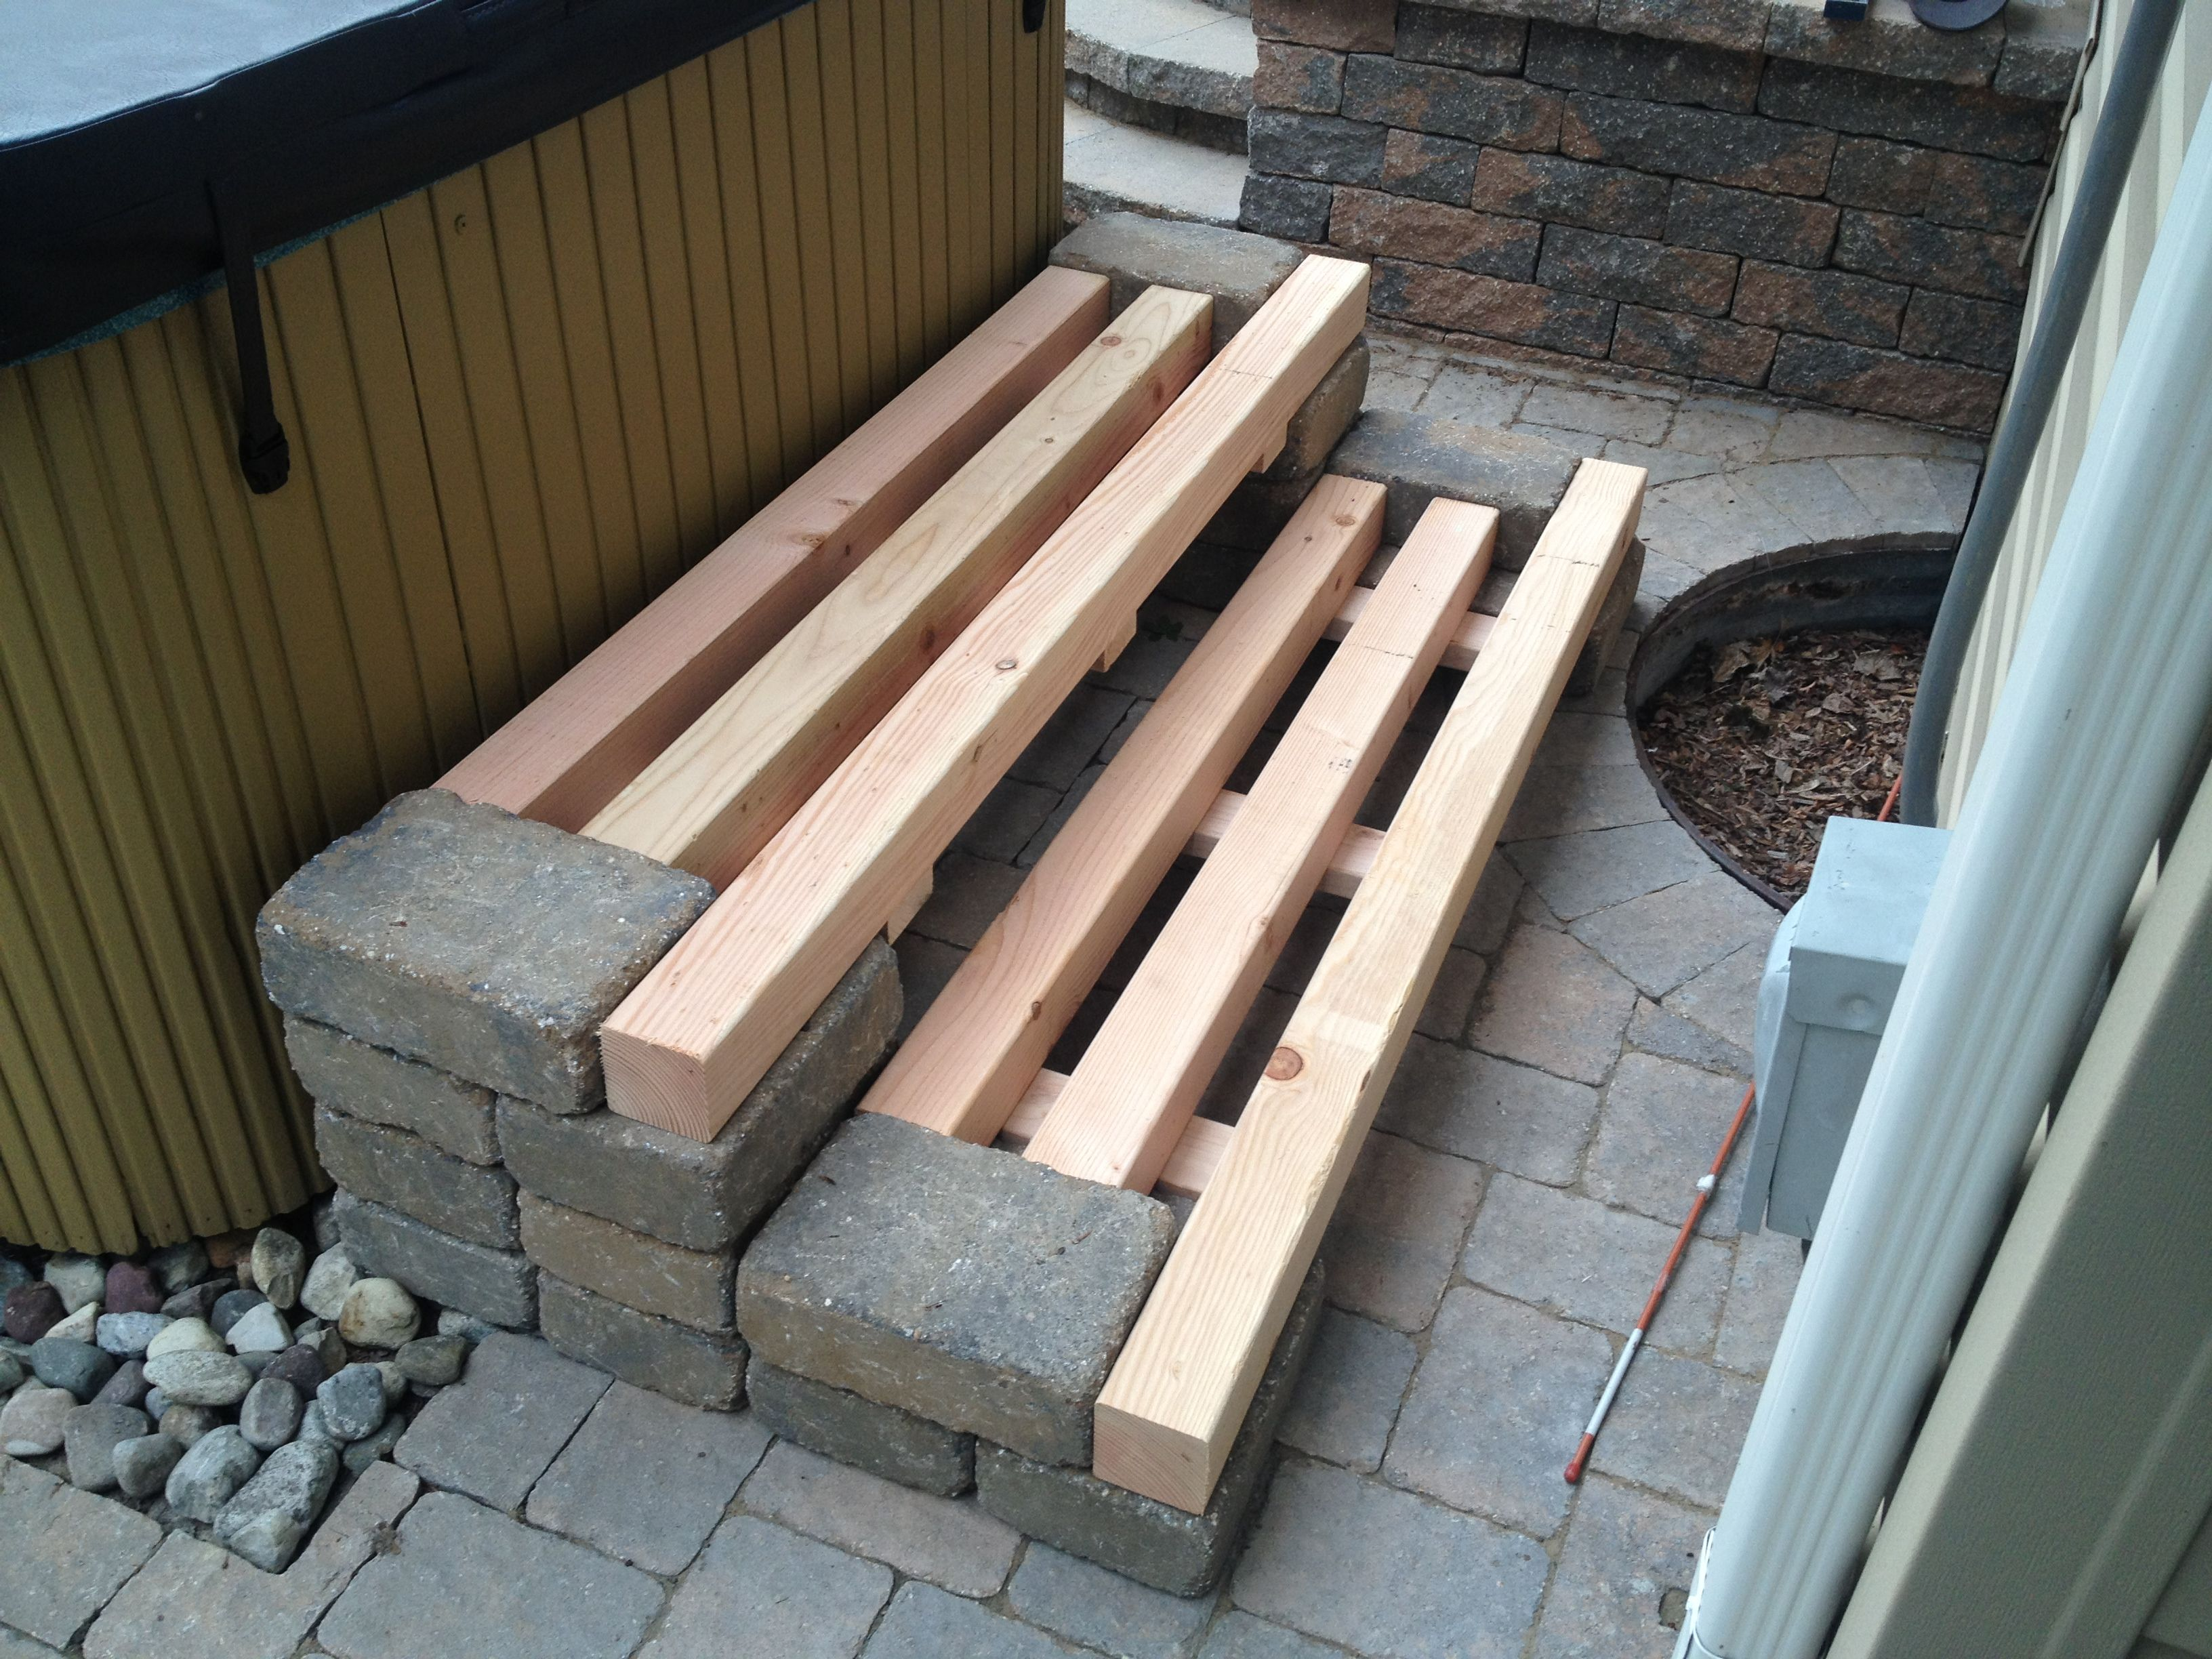 Patio Block And Wood Removable Steps Patio Blocks Hot Tub Steps Wood Steps